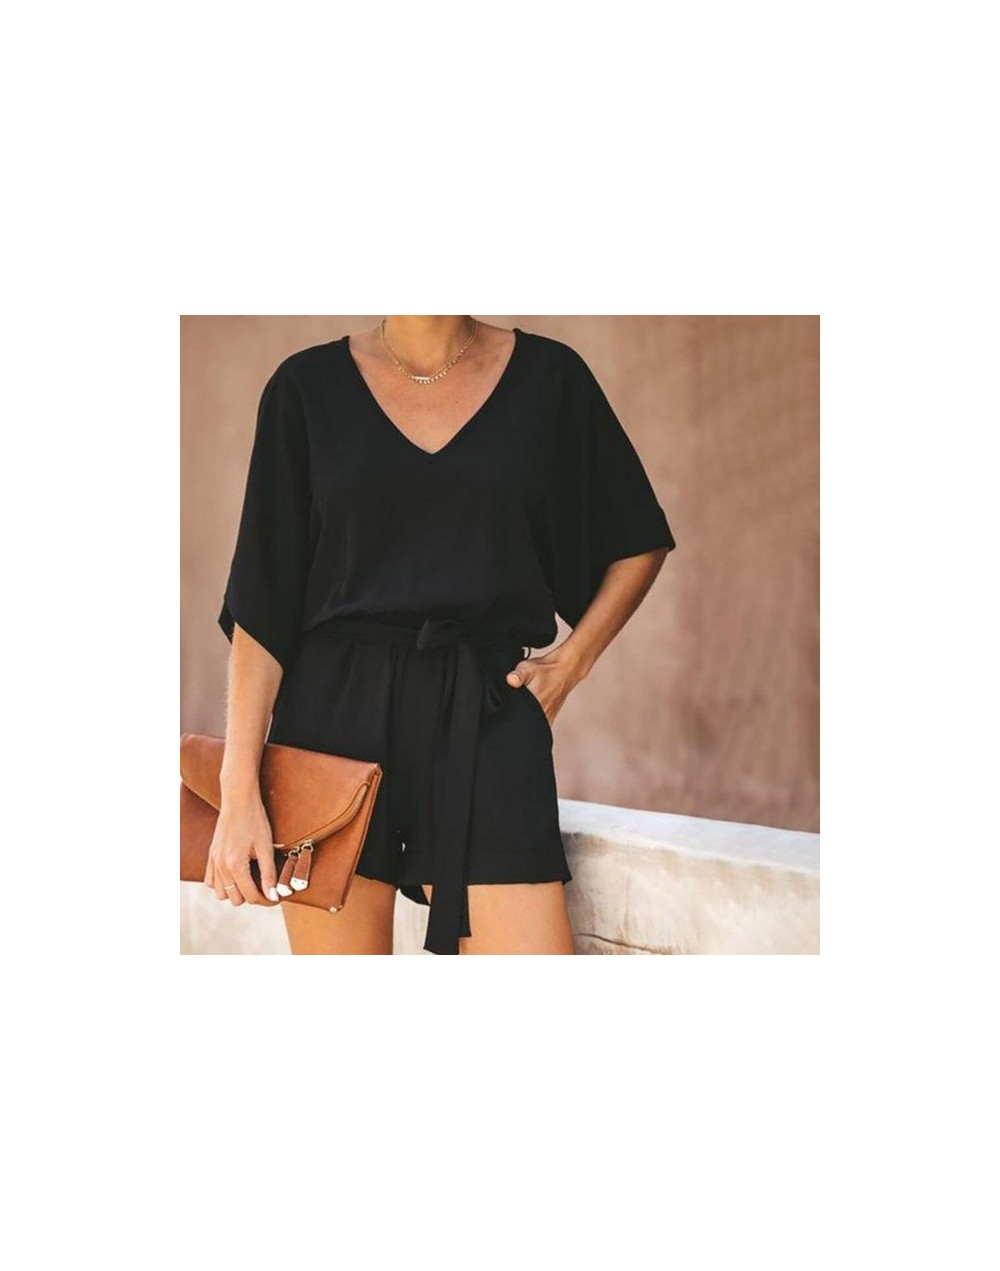 Women Fashion Jumpsuit Sexy Lace Up V-Neck Rompers Casual Playsuit Chiffon Short Sleeve Bodysuit - Black - 4000077060567